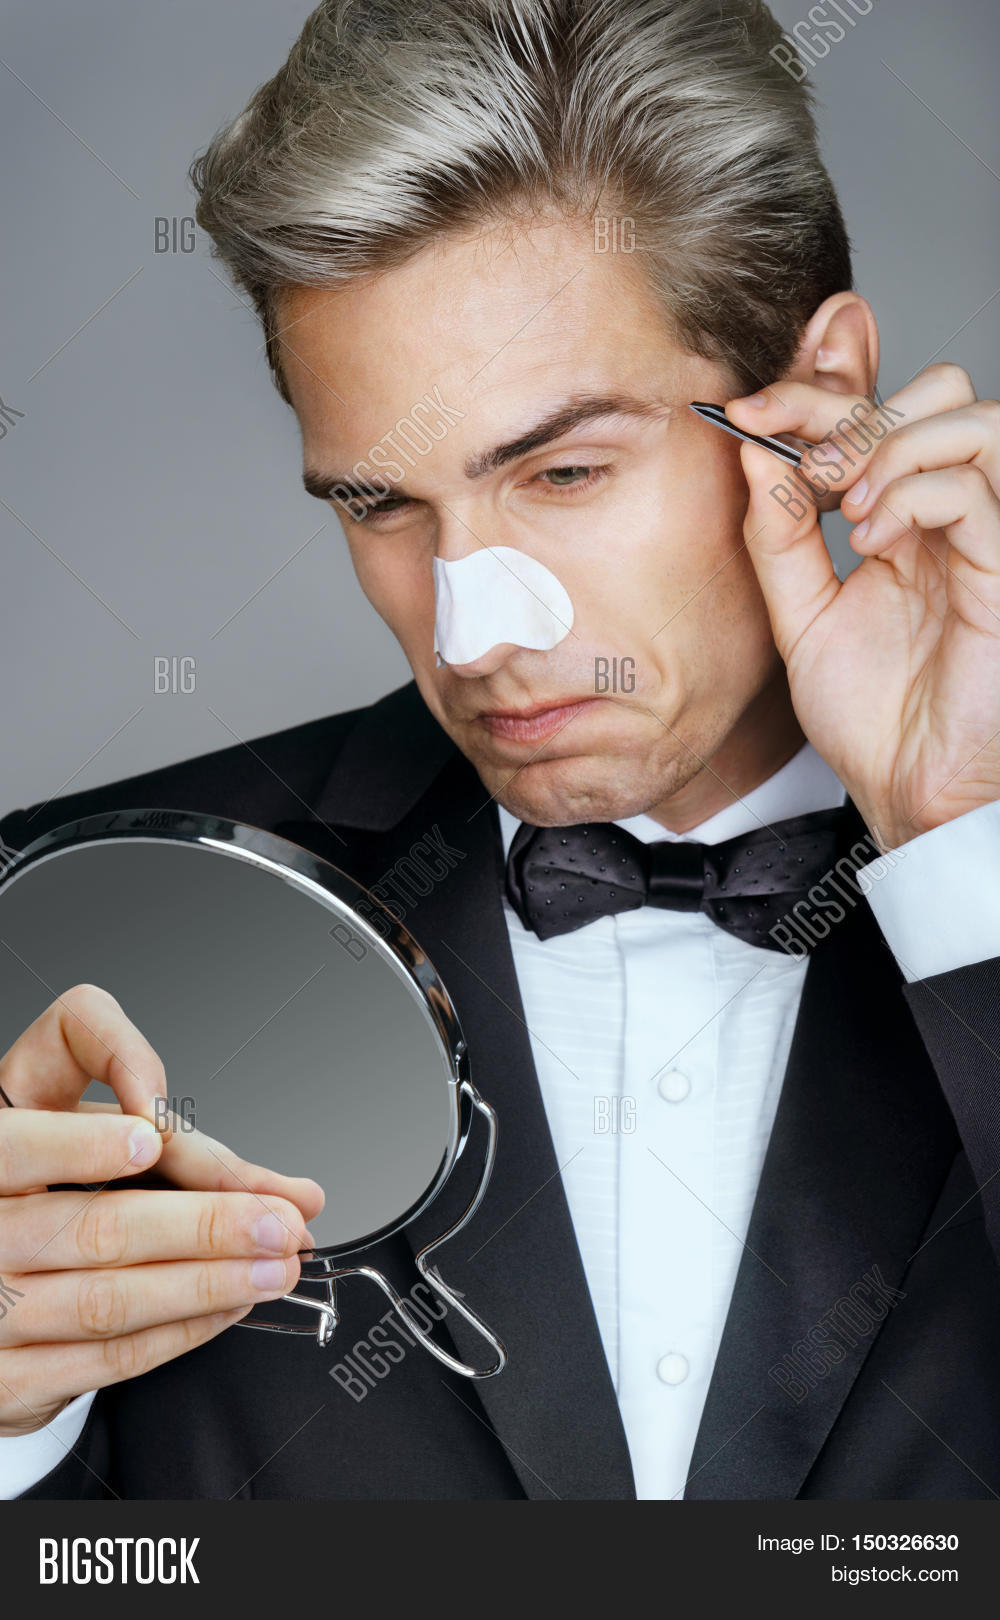 Man Looking Mirror Image Photo Free Trial Bigstock